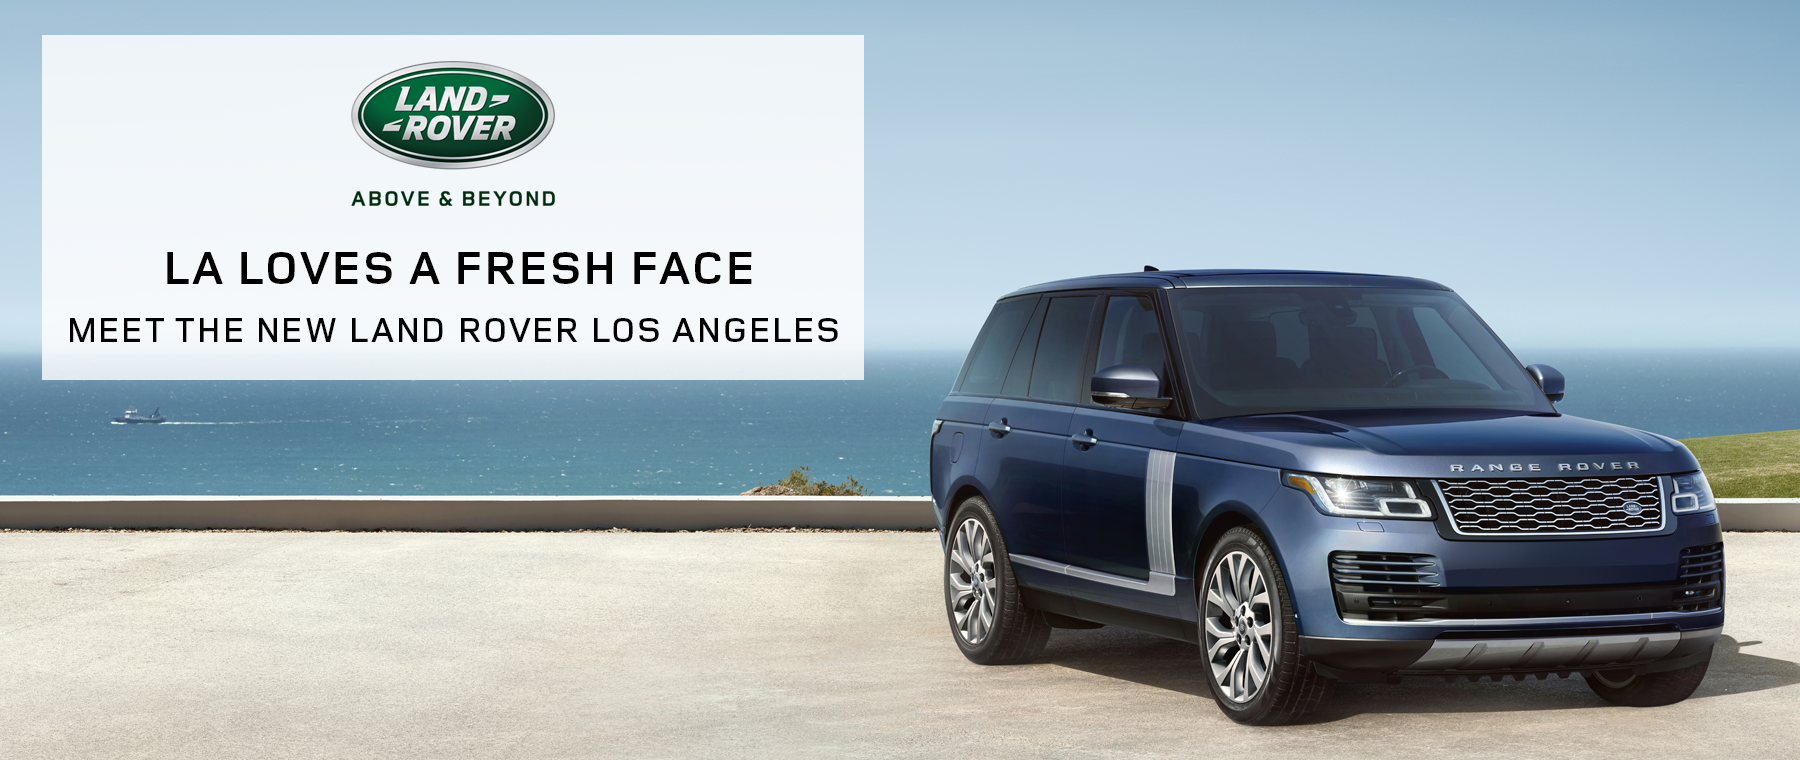 Meet the New Land Rover Los Angeles